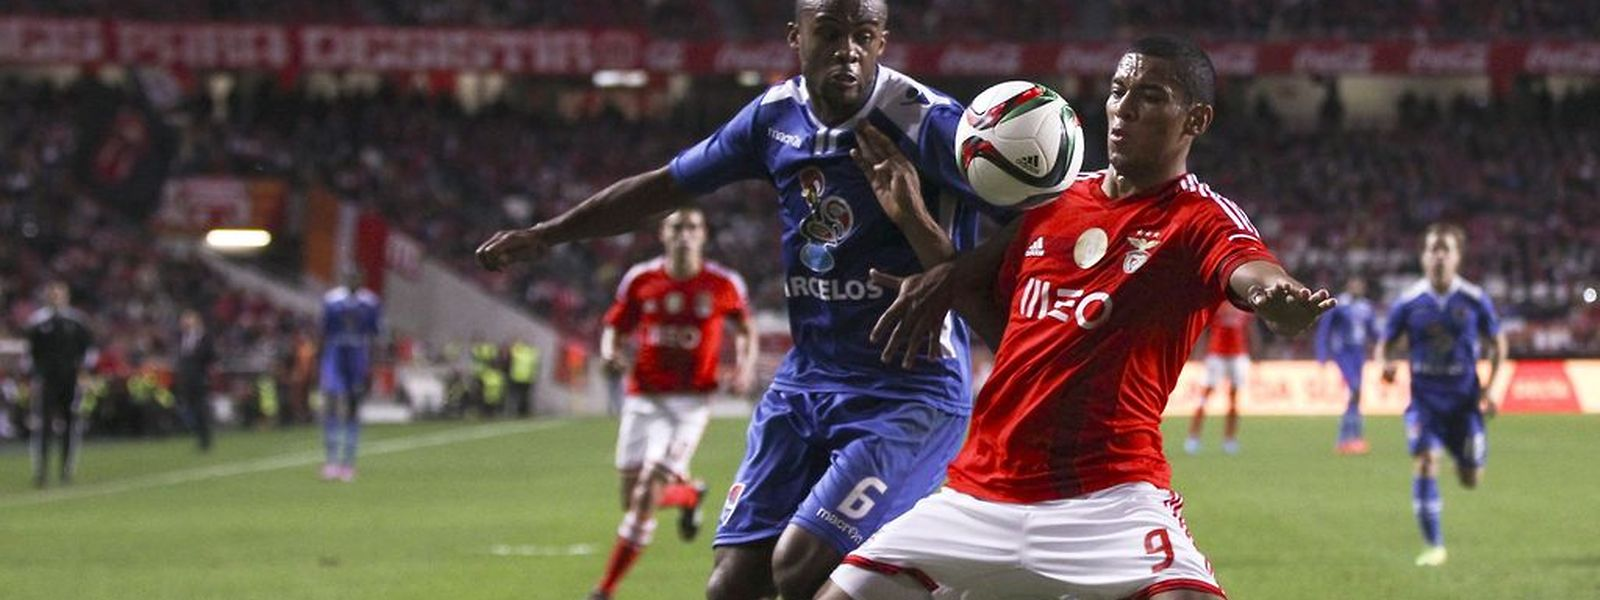 Derley (D) do Benfica e Evaldo, do Gil Vicente